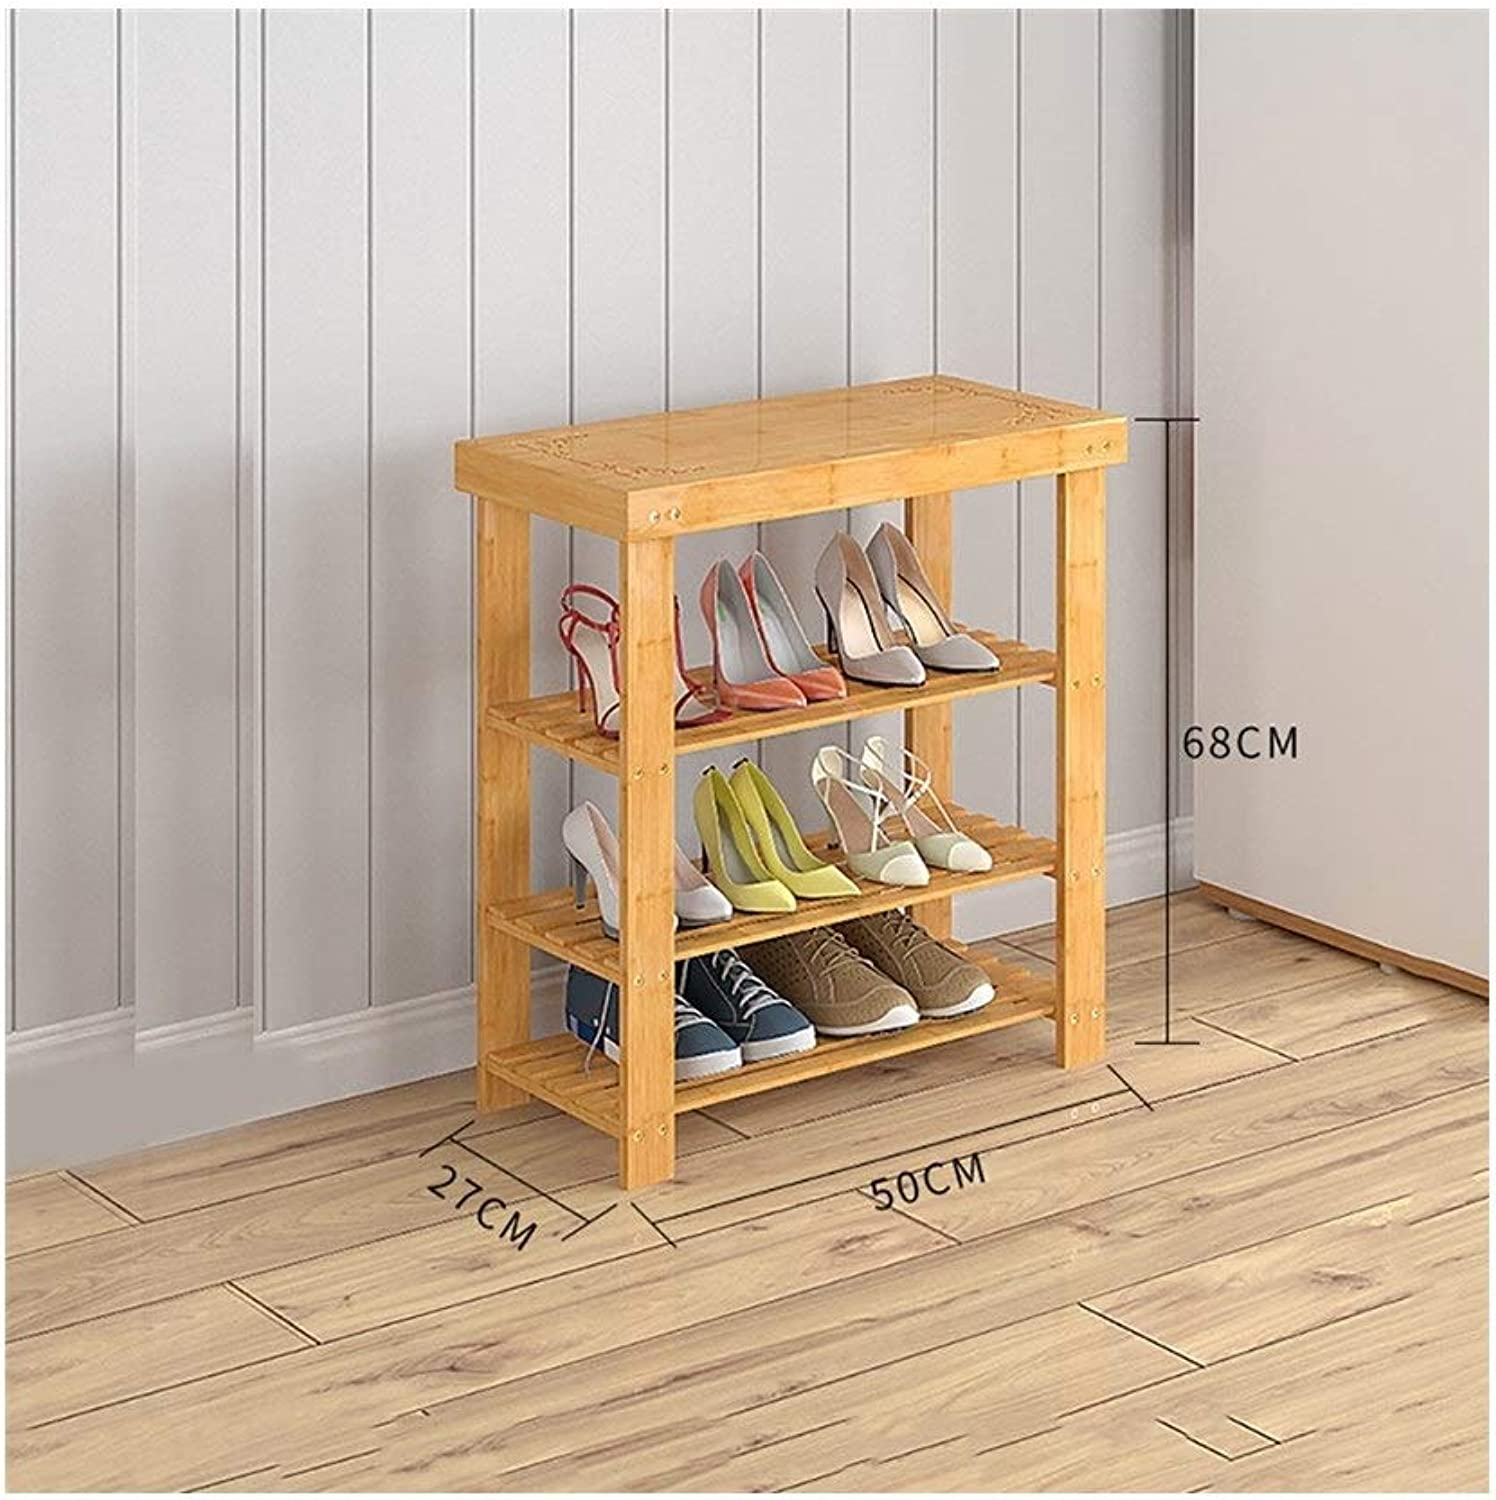 shoes Rack Organizer Storage, Multi-Layer Simple Solid Wood shoes, shoes Bench, Bamboo Storage Rack, dust-Proof shoes Rack. (Size   50  27  68CM)